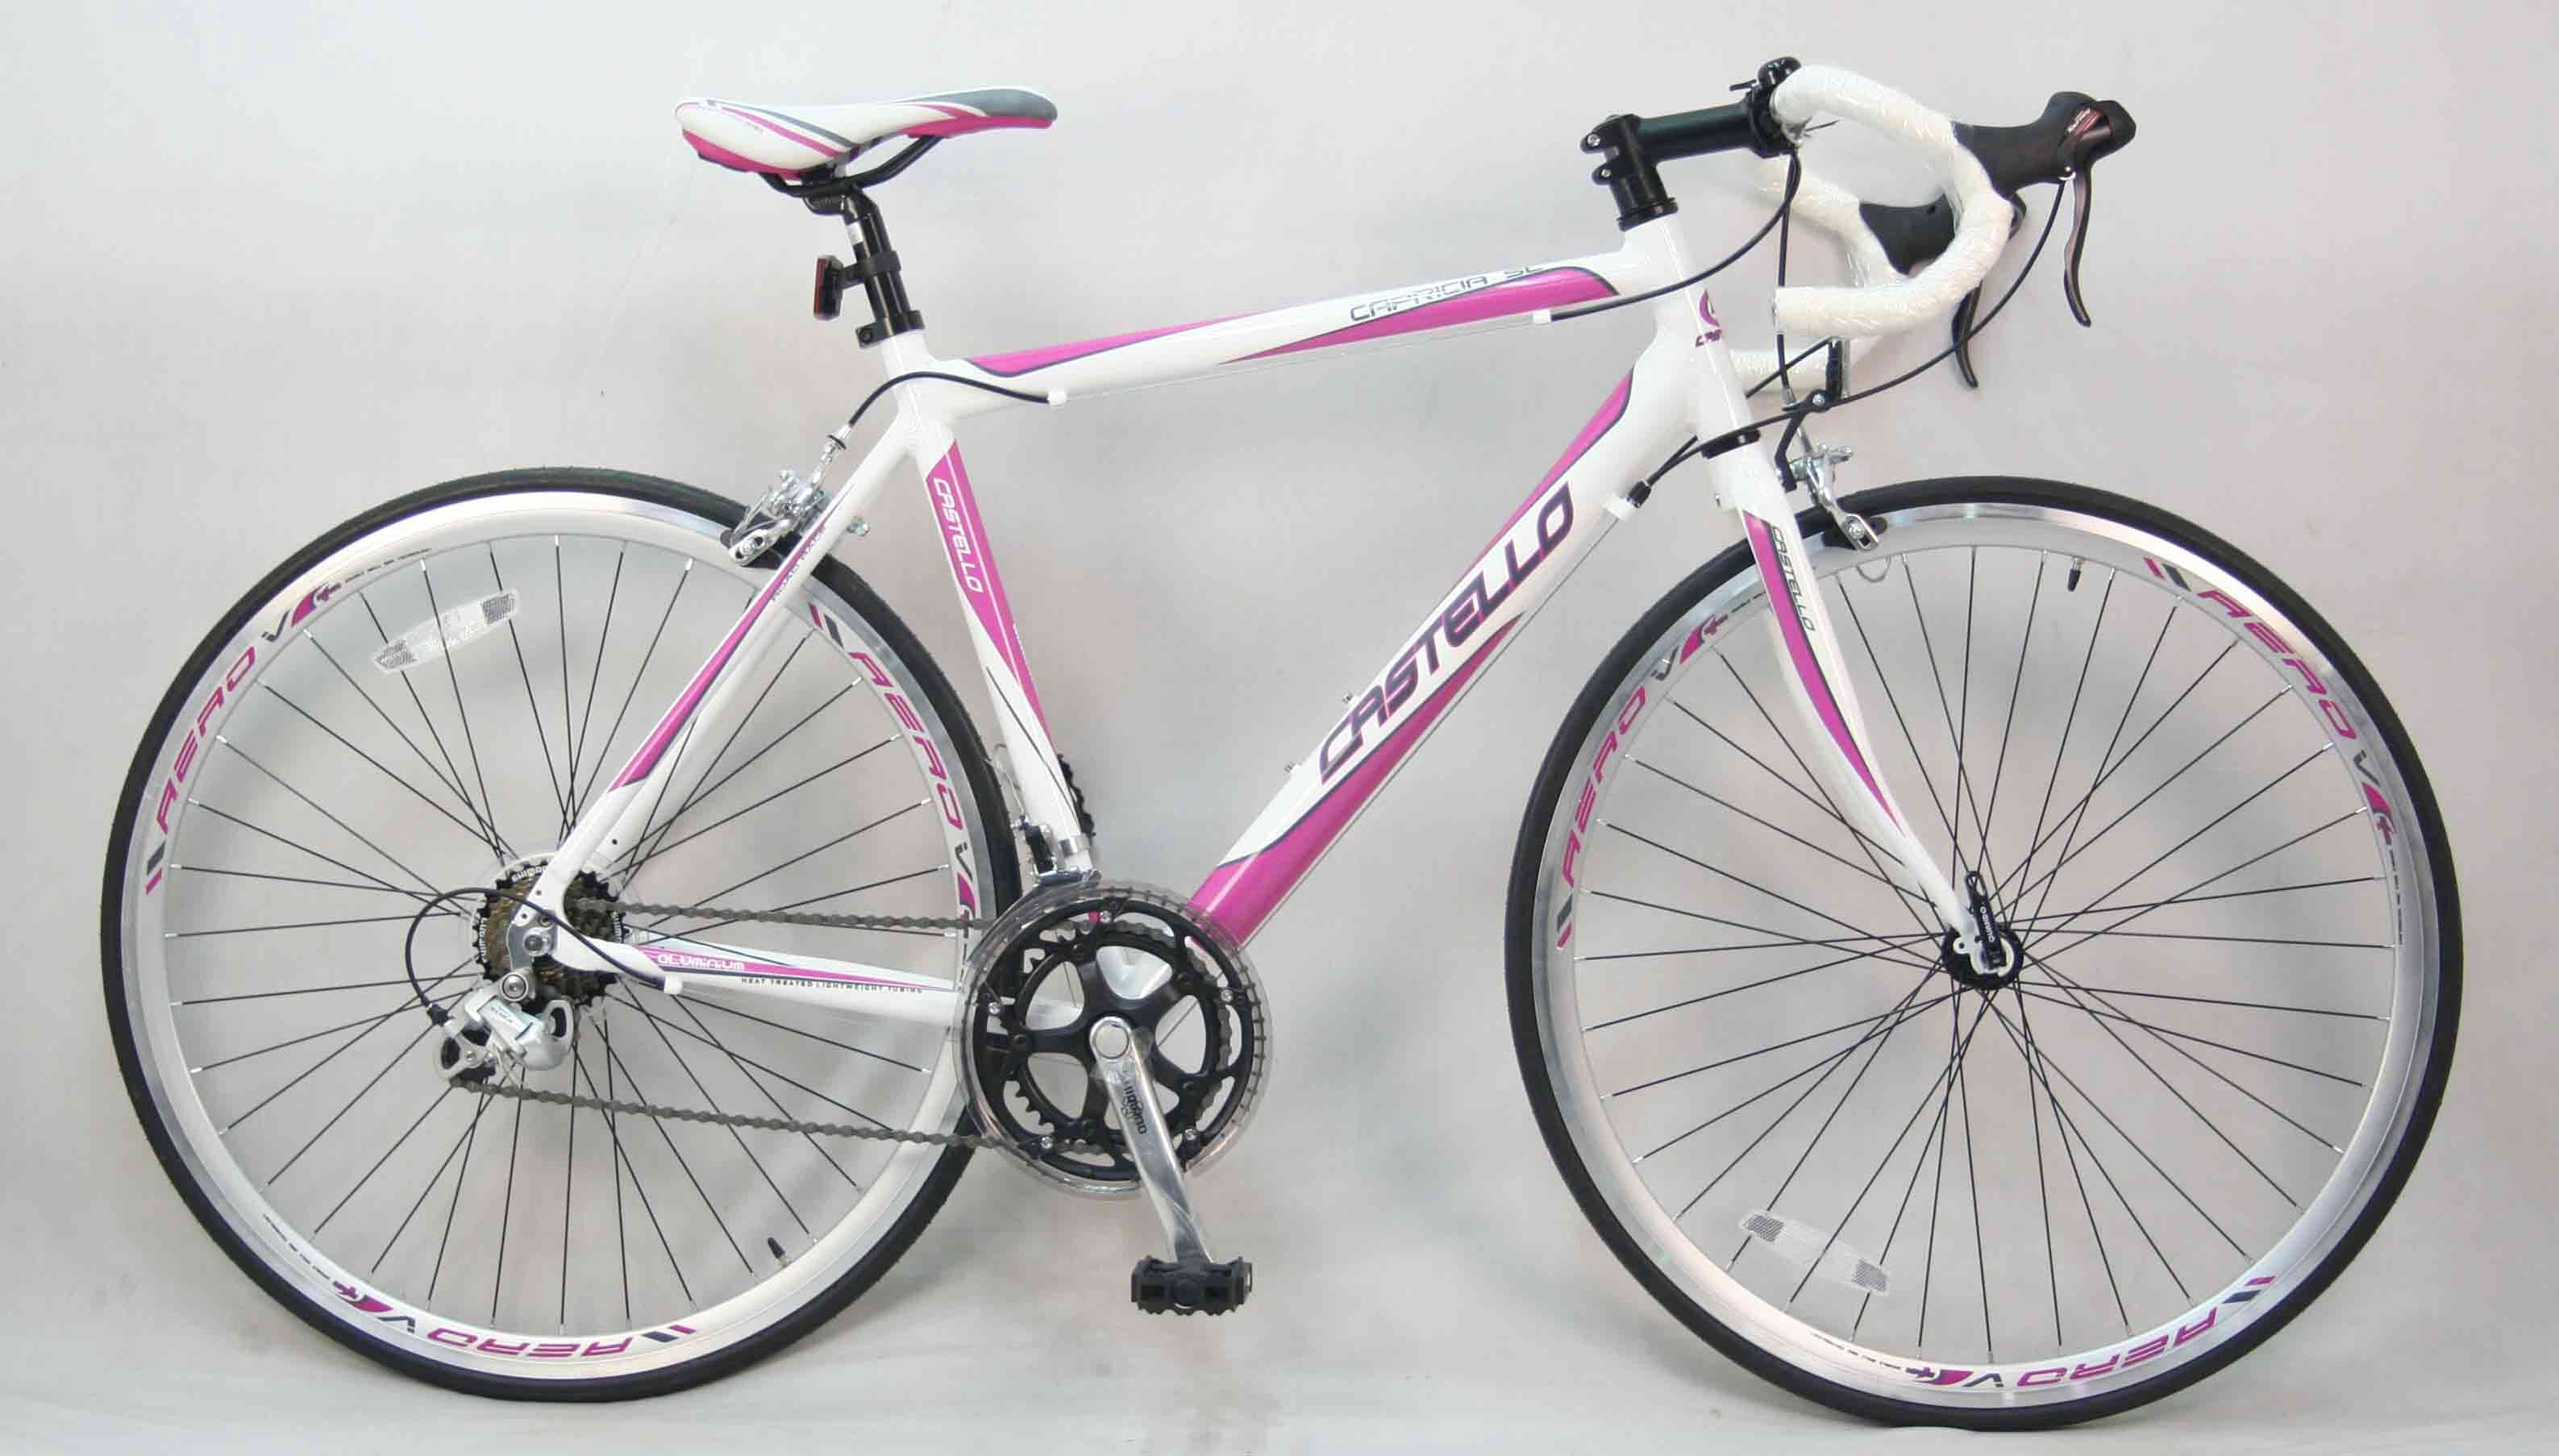 Castello Capricia SL Ladies Racing Bike